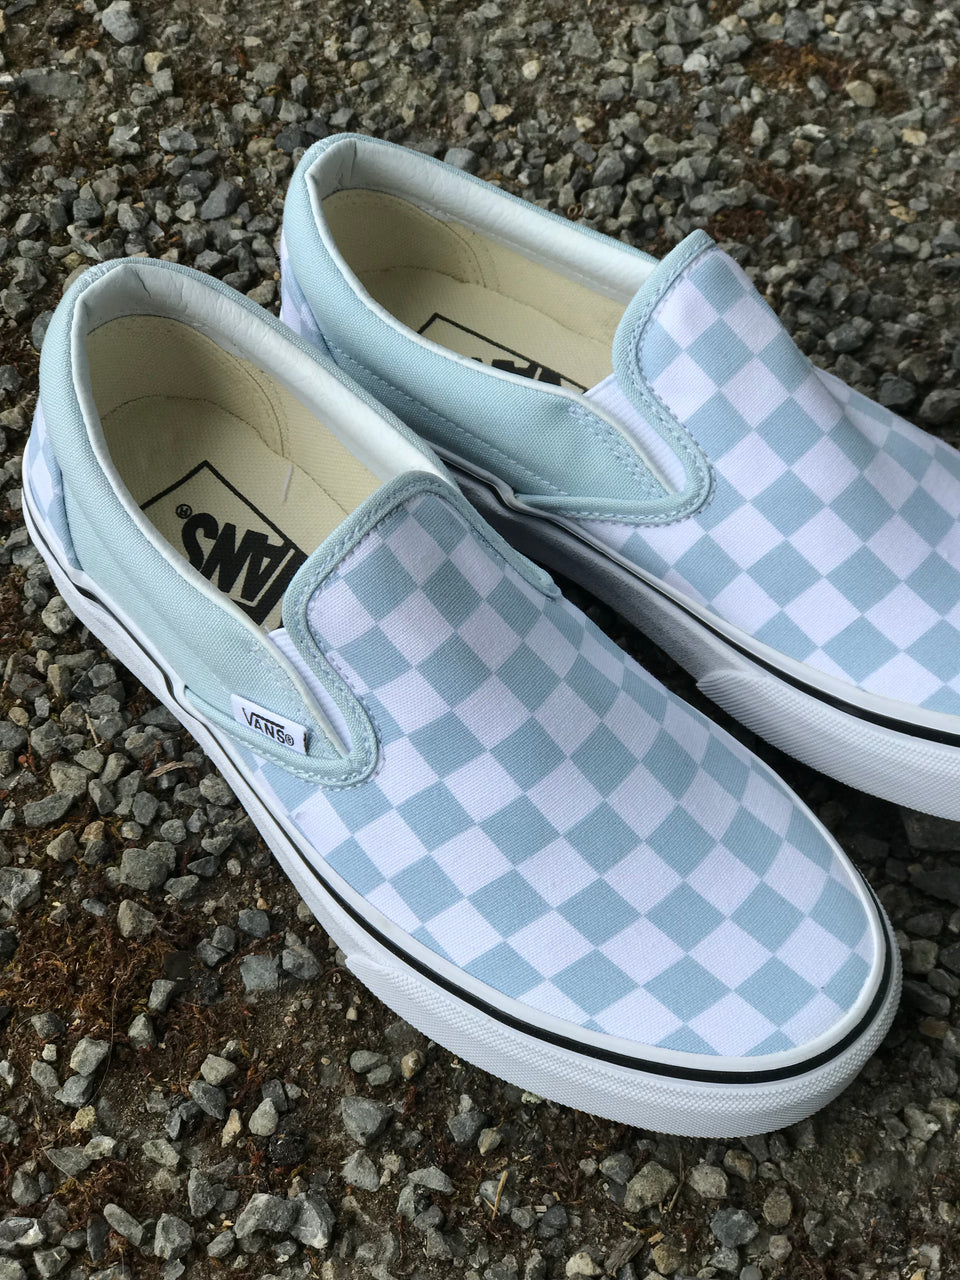 Vans Classic Slip-On (Checkerboard) Baby Blue/True White